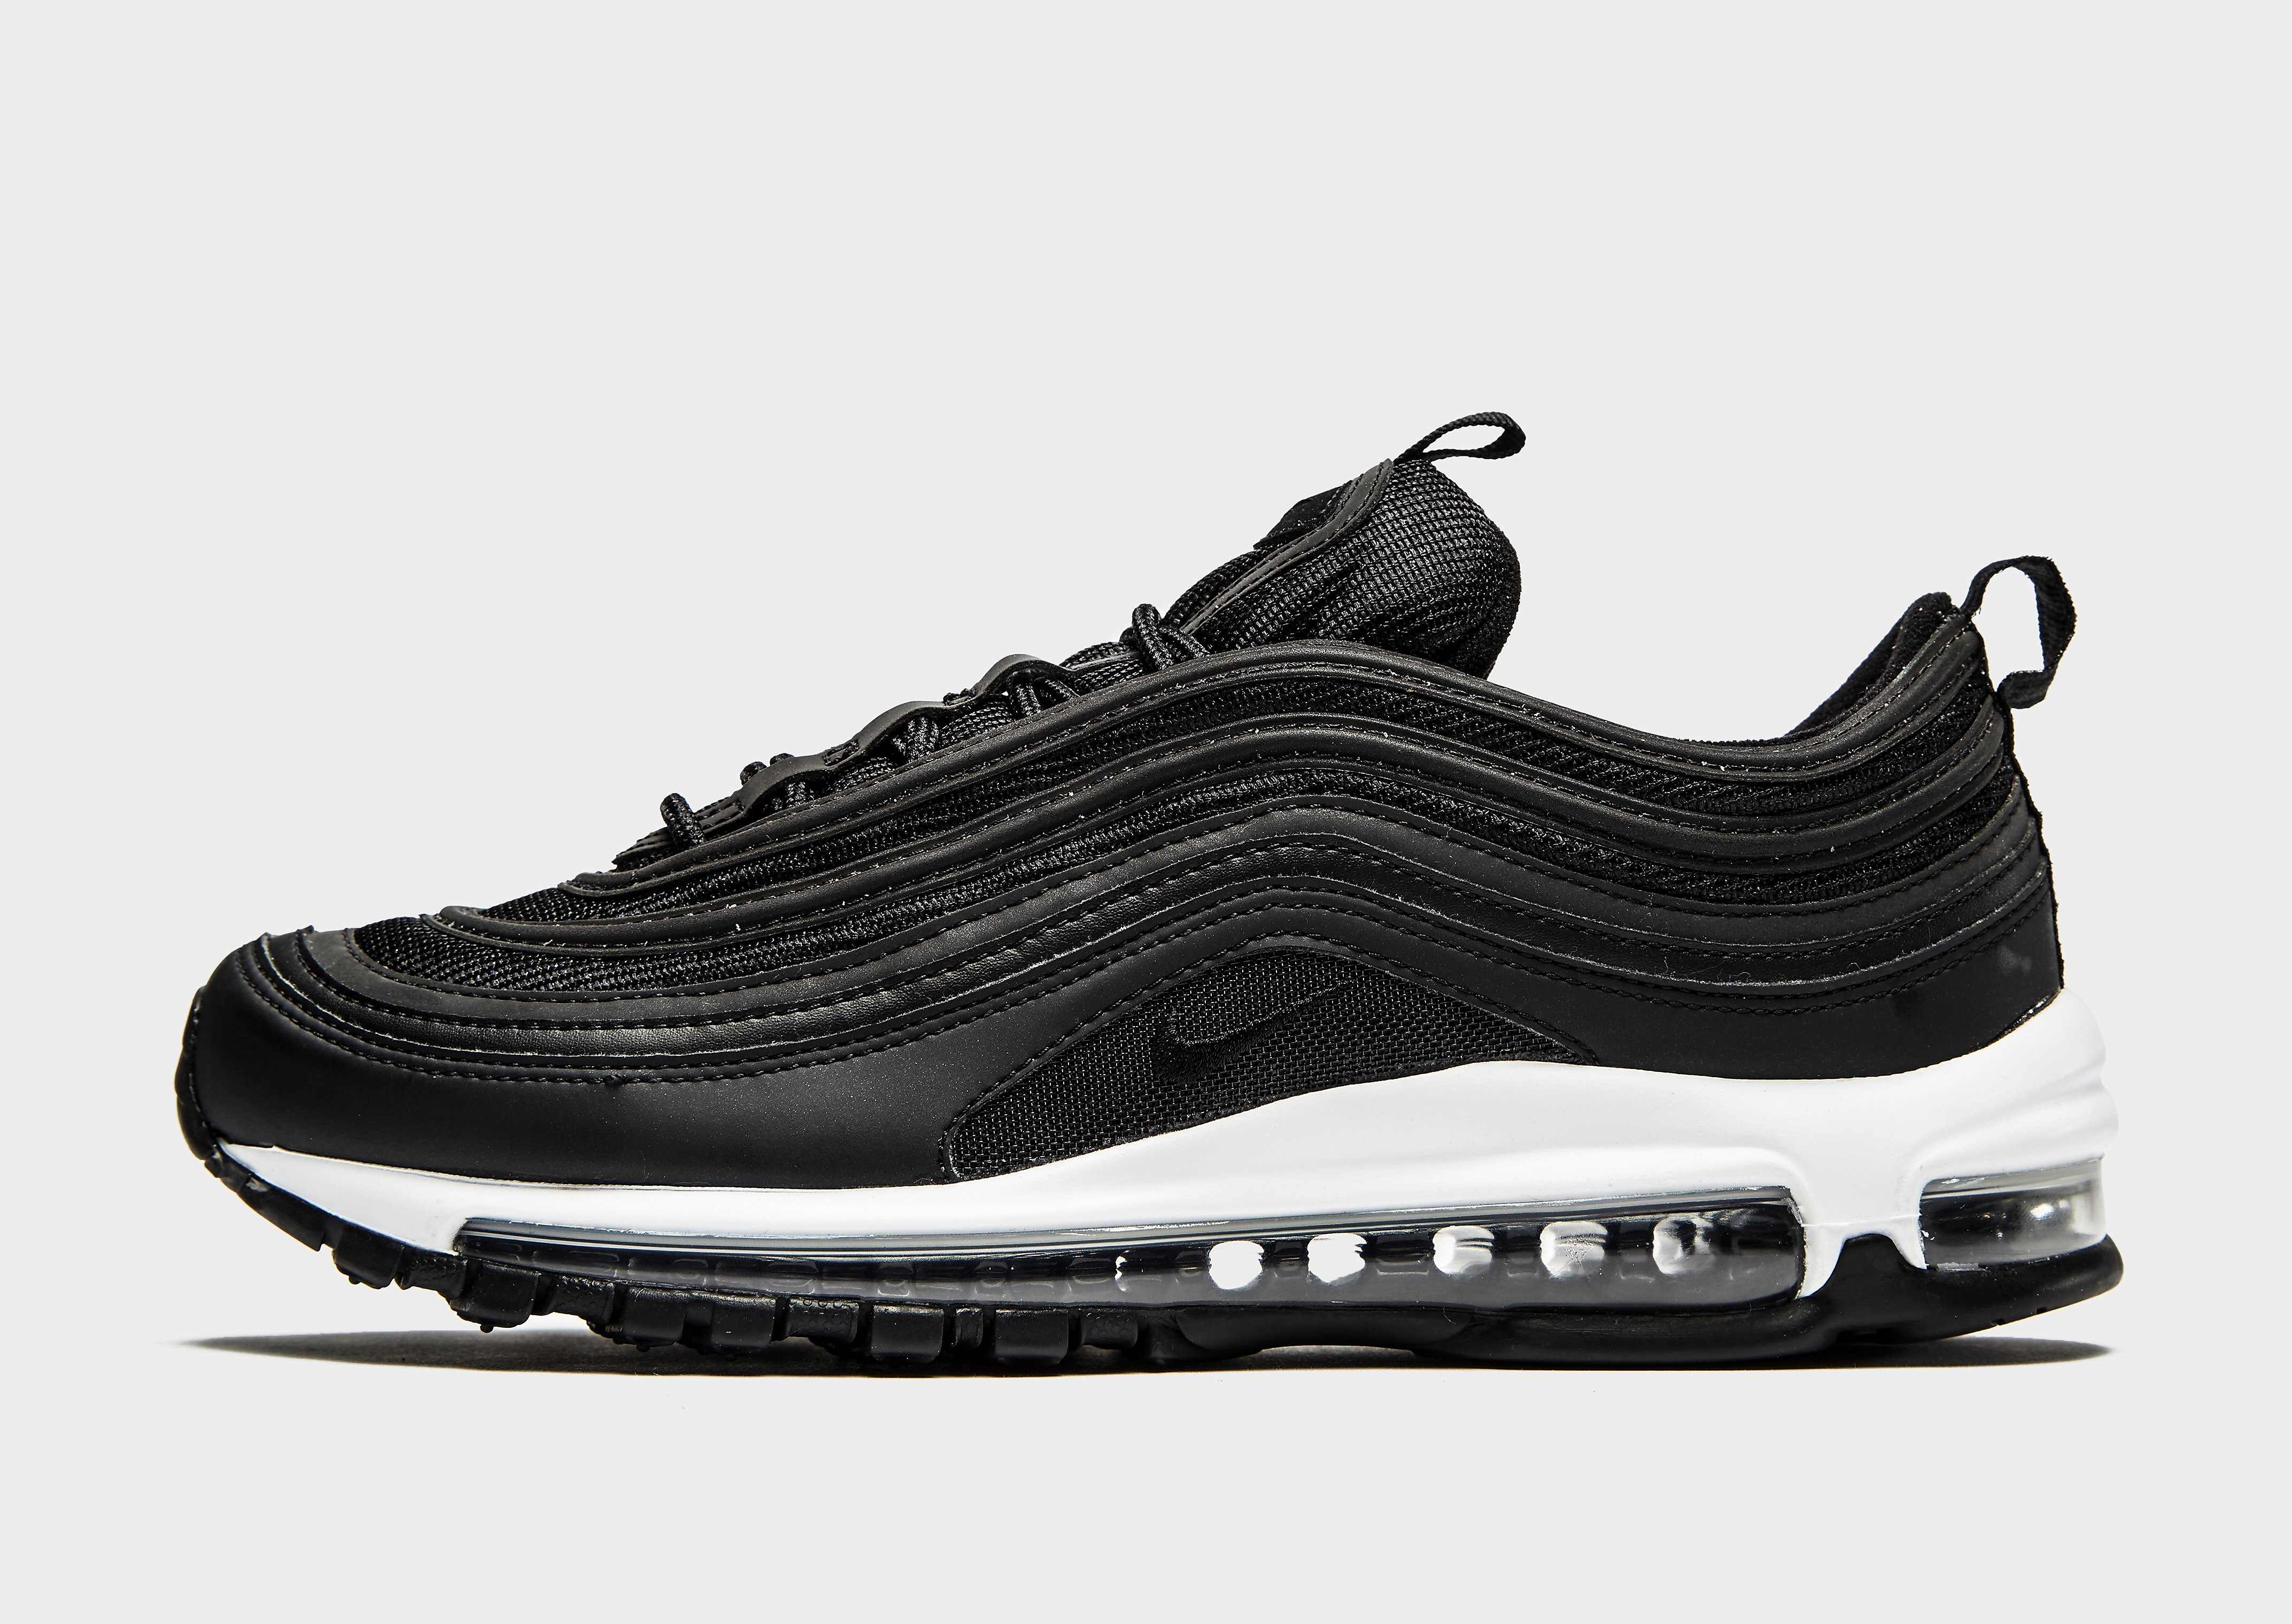 Nike Air Max 97 Air Max 97 Sneakers And Footwear Jd Sports